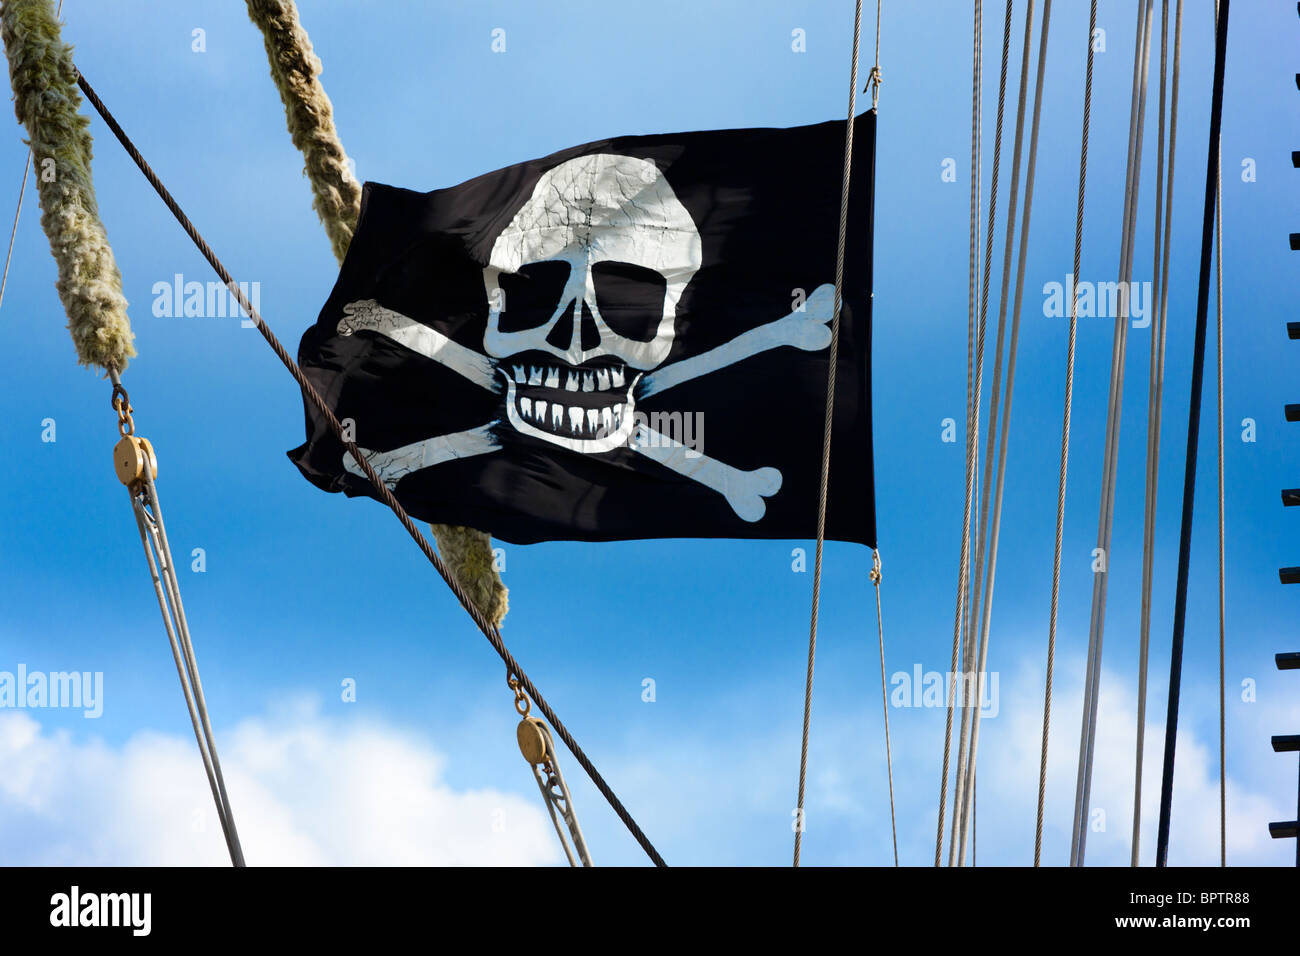 Skull and crossbones, Jolly Roger, a pirates' flag flying on a historic tall ship - Stock Image